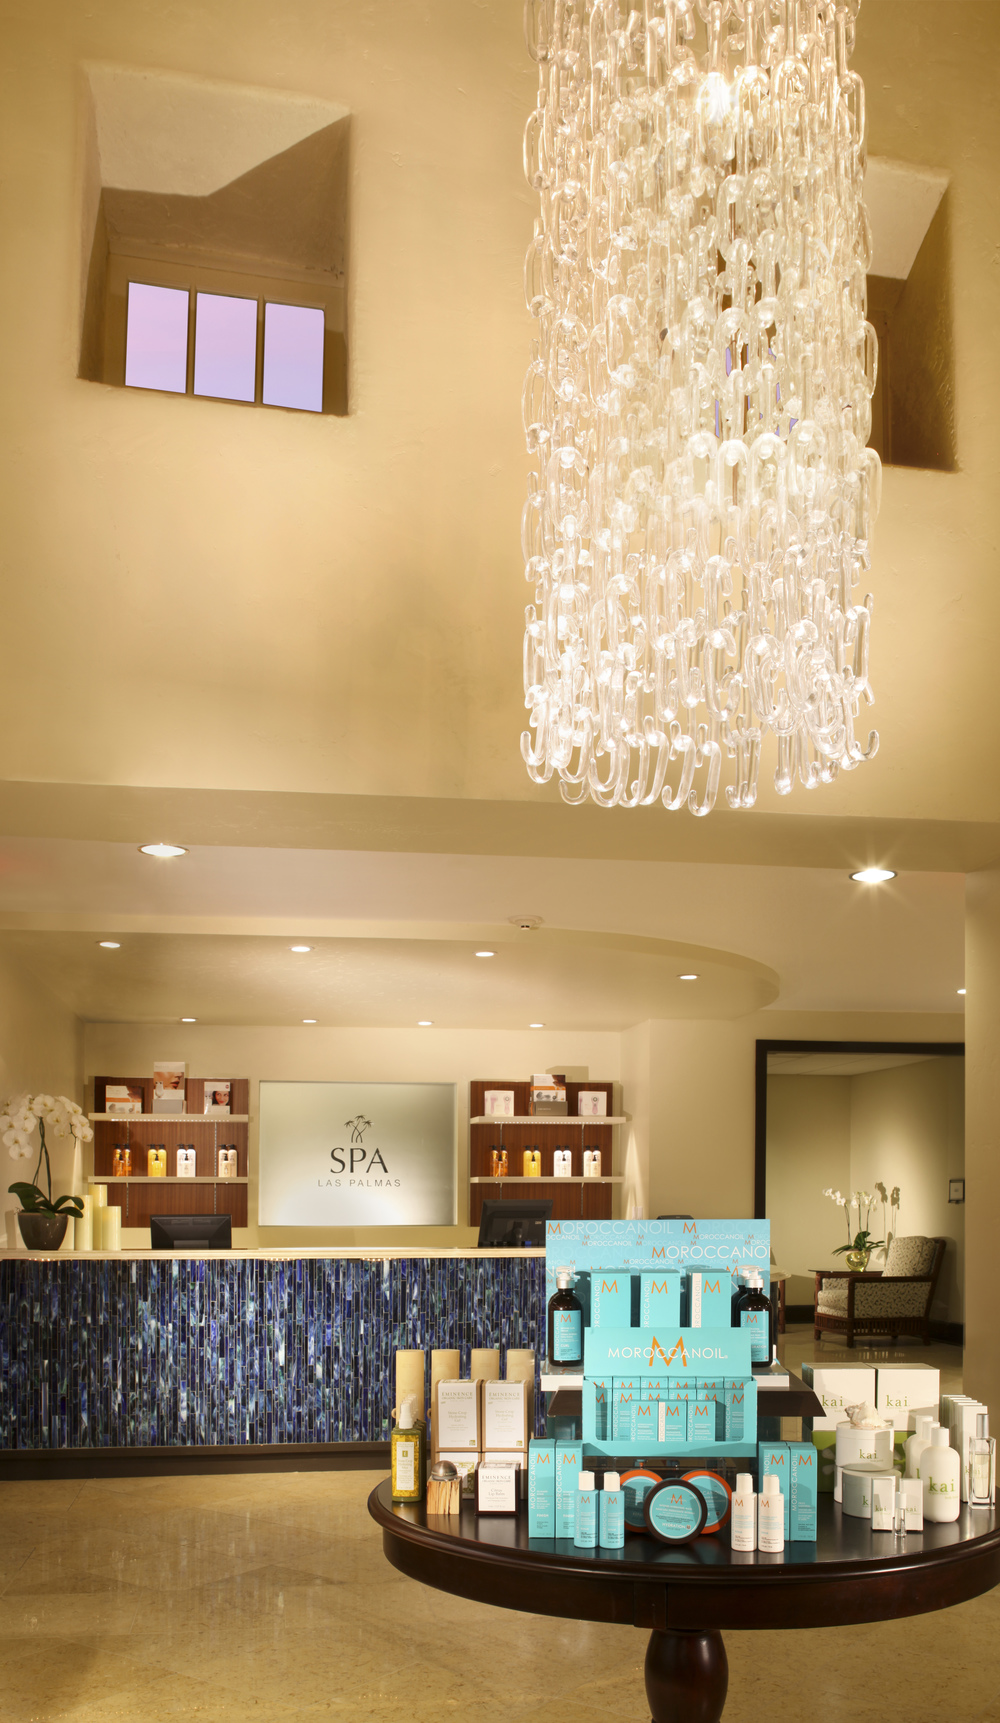 Las Palmas Spa Shop & Reception